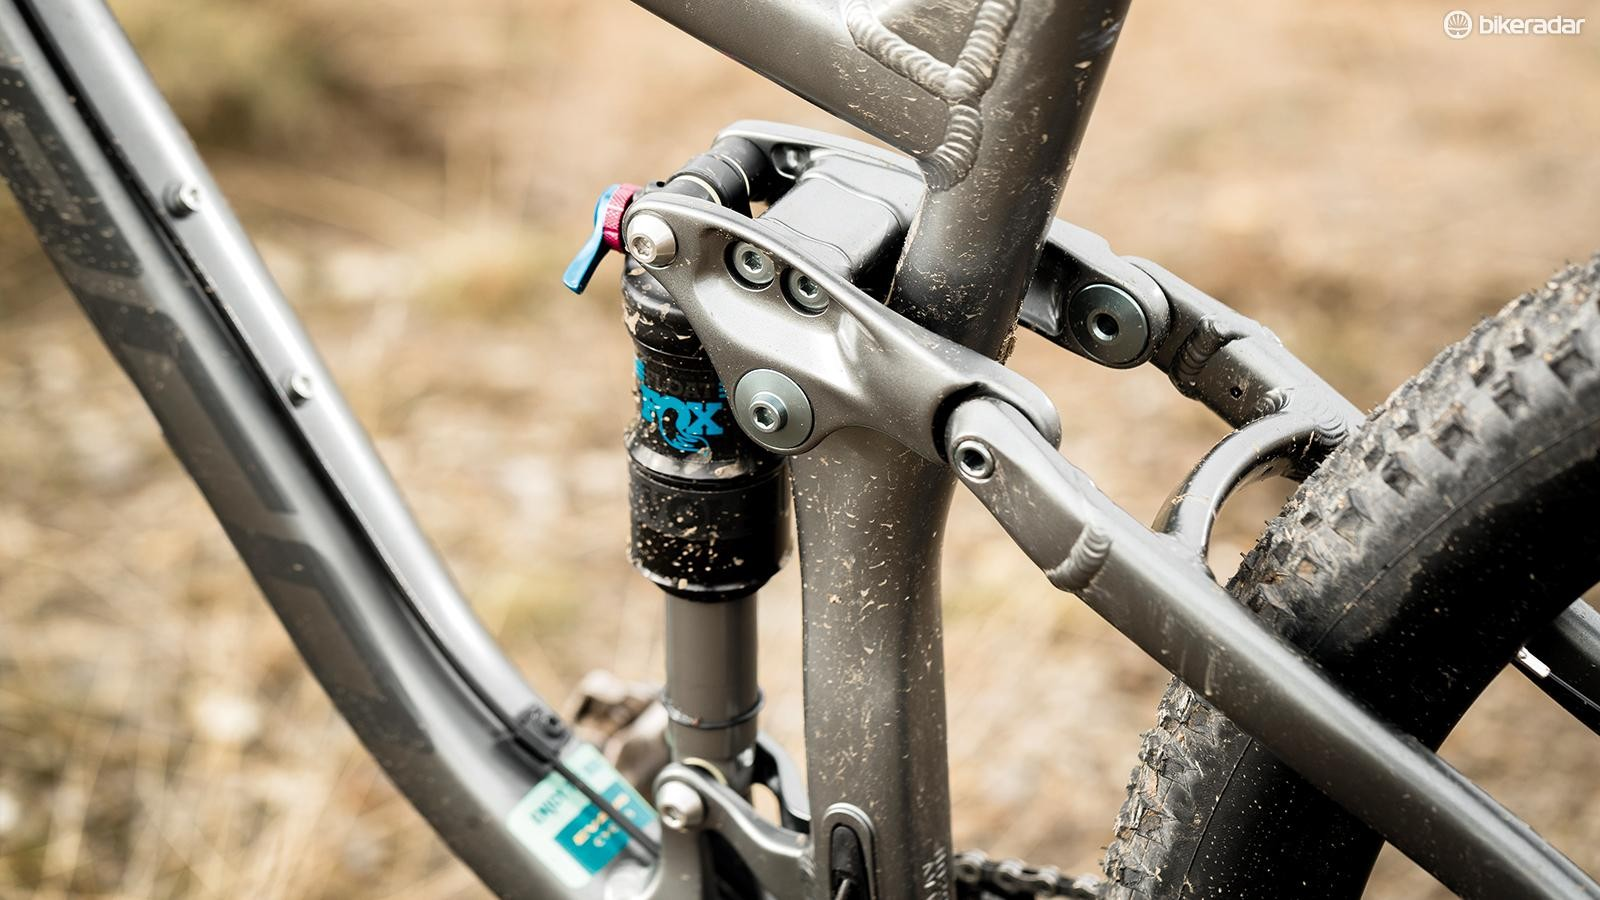 A Performance Fox Float shock at the rear is combined with a Performance 34 fork up front